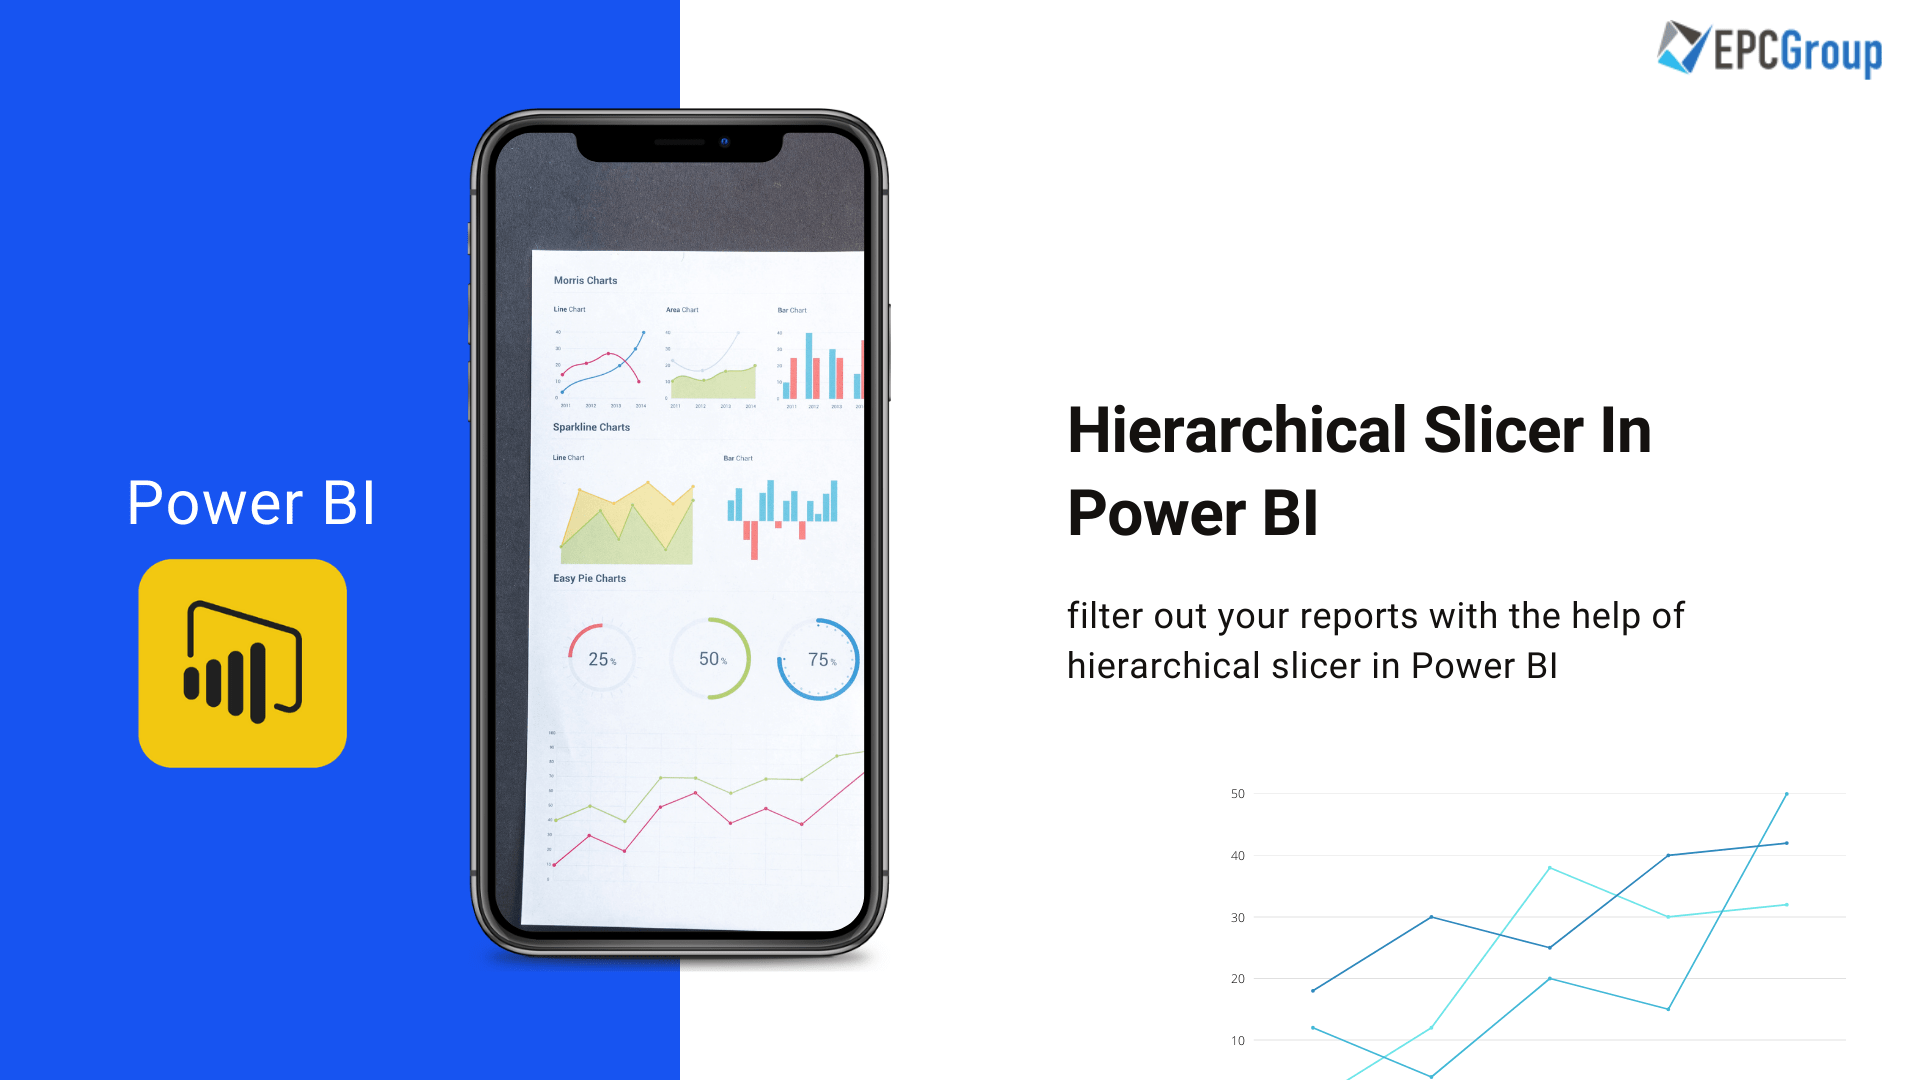 How To Get A Hierarchical Slicer In Power BI? - thumb image